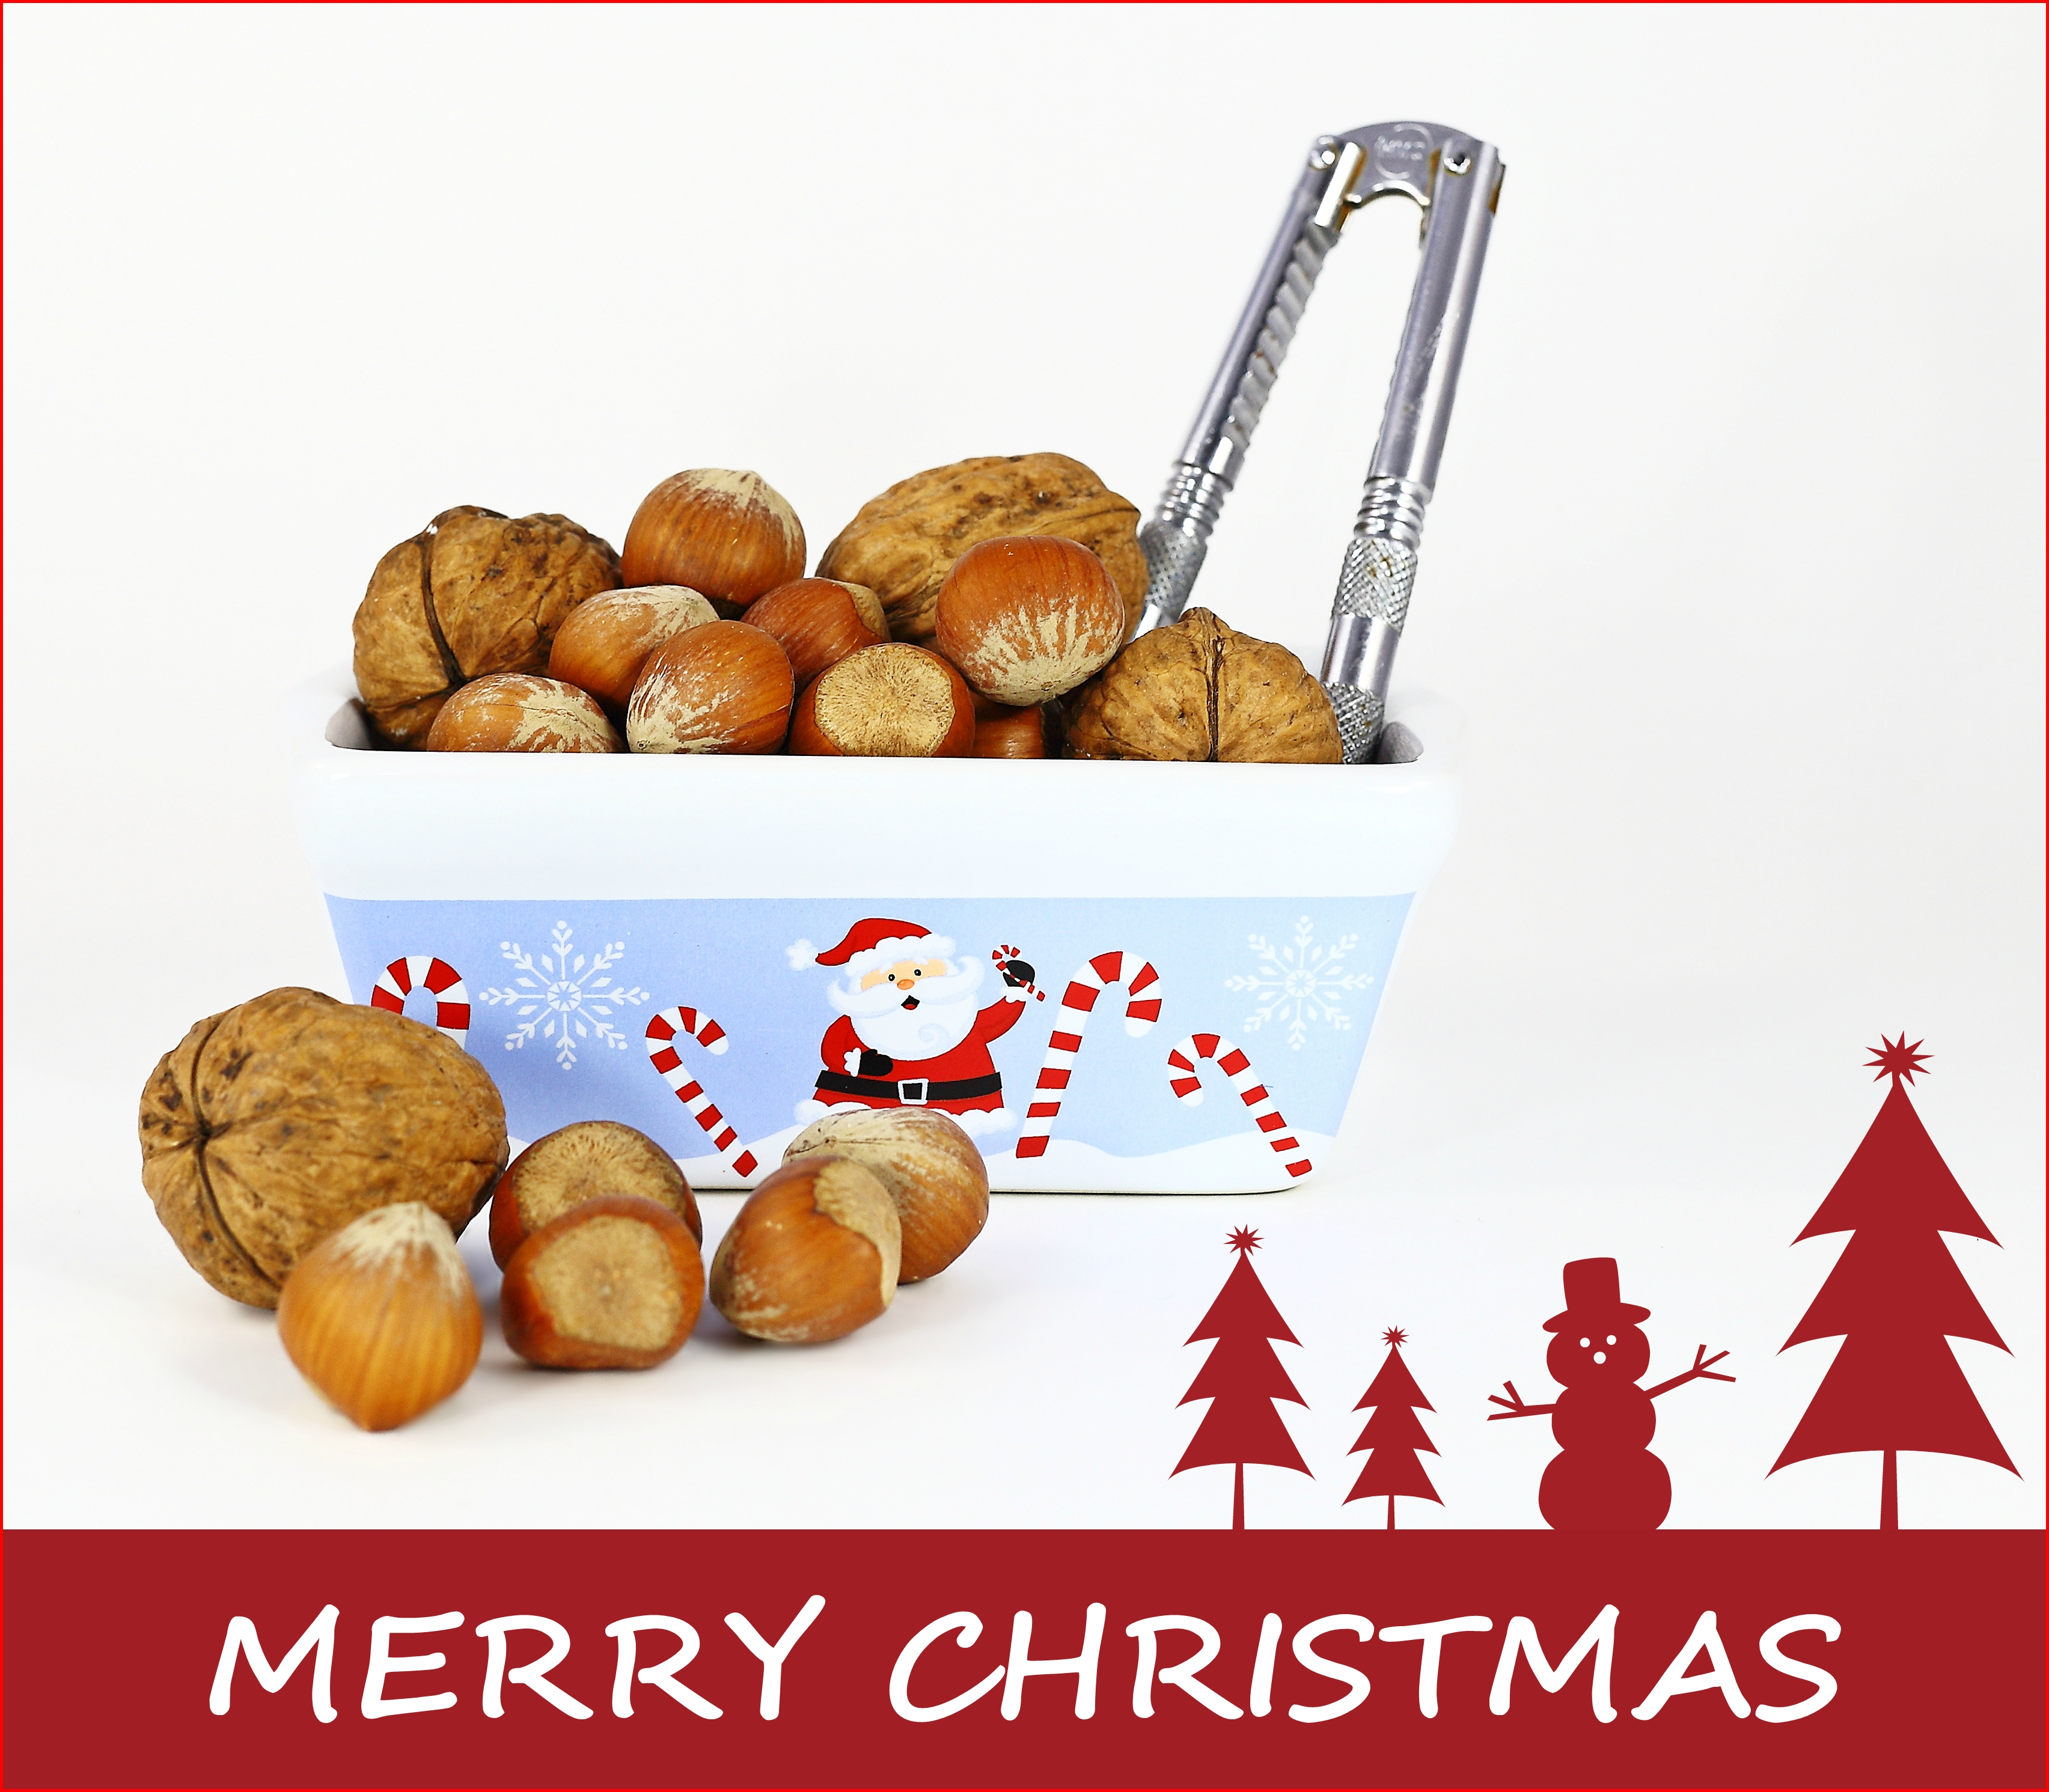 Our Daily Challenge: Festive Food. canon, nuts, 6d, festivefood, odc. buy photo